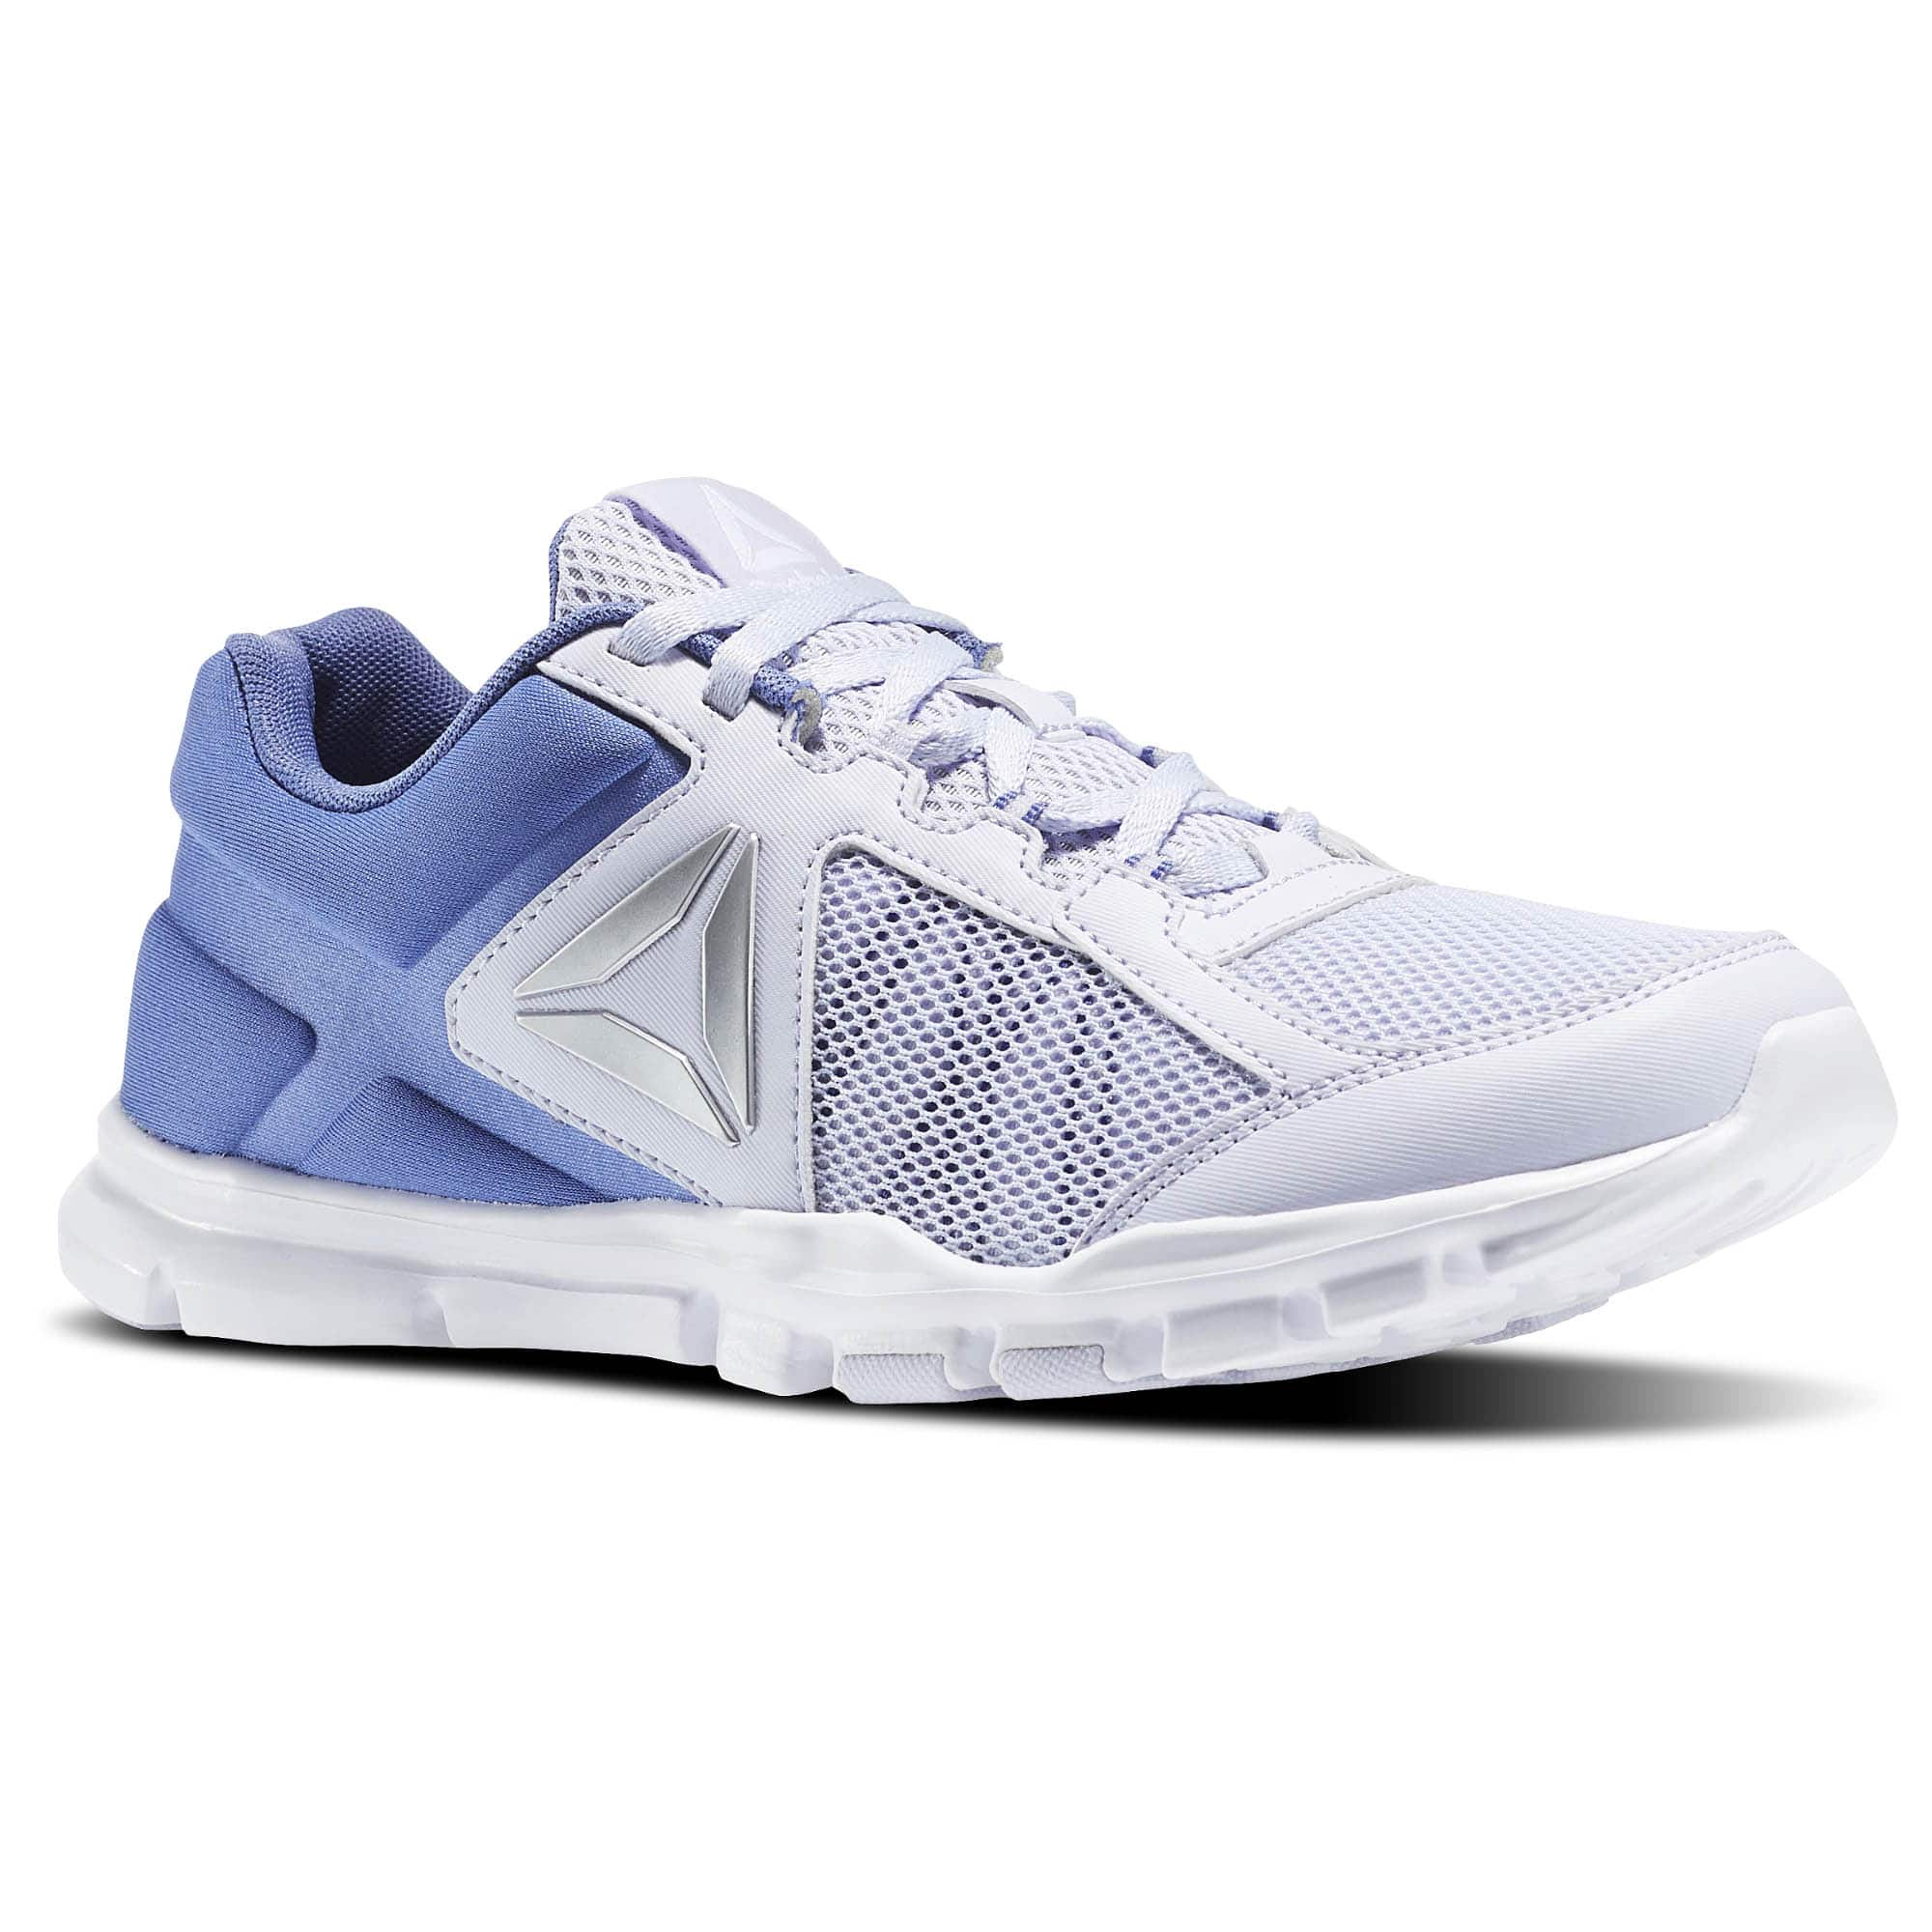 e97e0953972 Reebok Women s YourFlex Trainette 9.0 MT Training Shoes (various ...